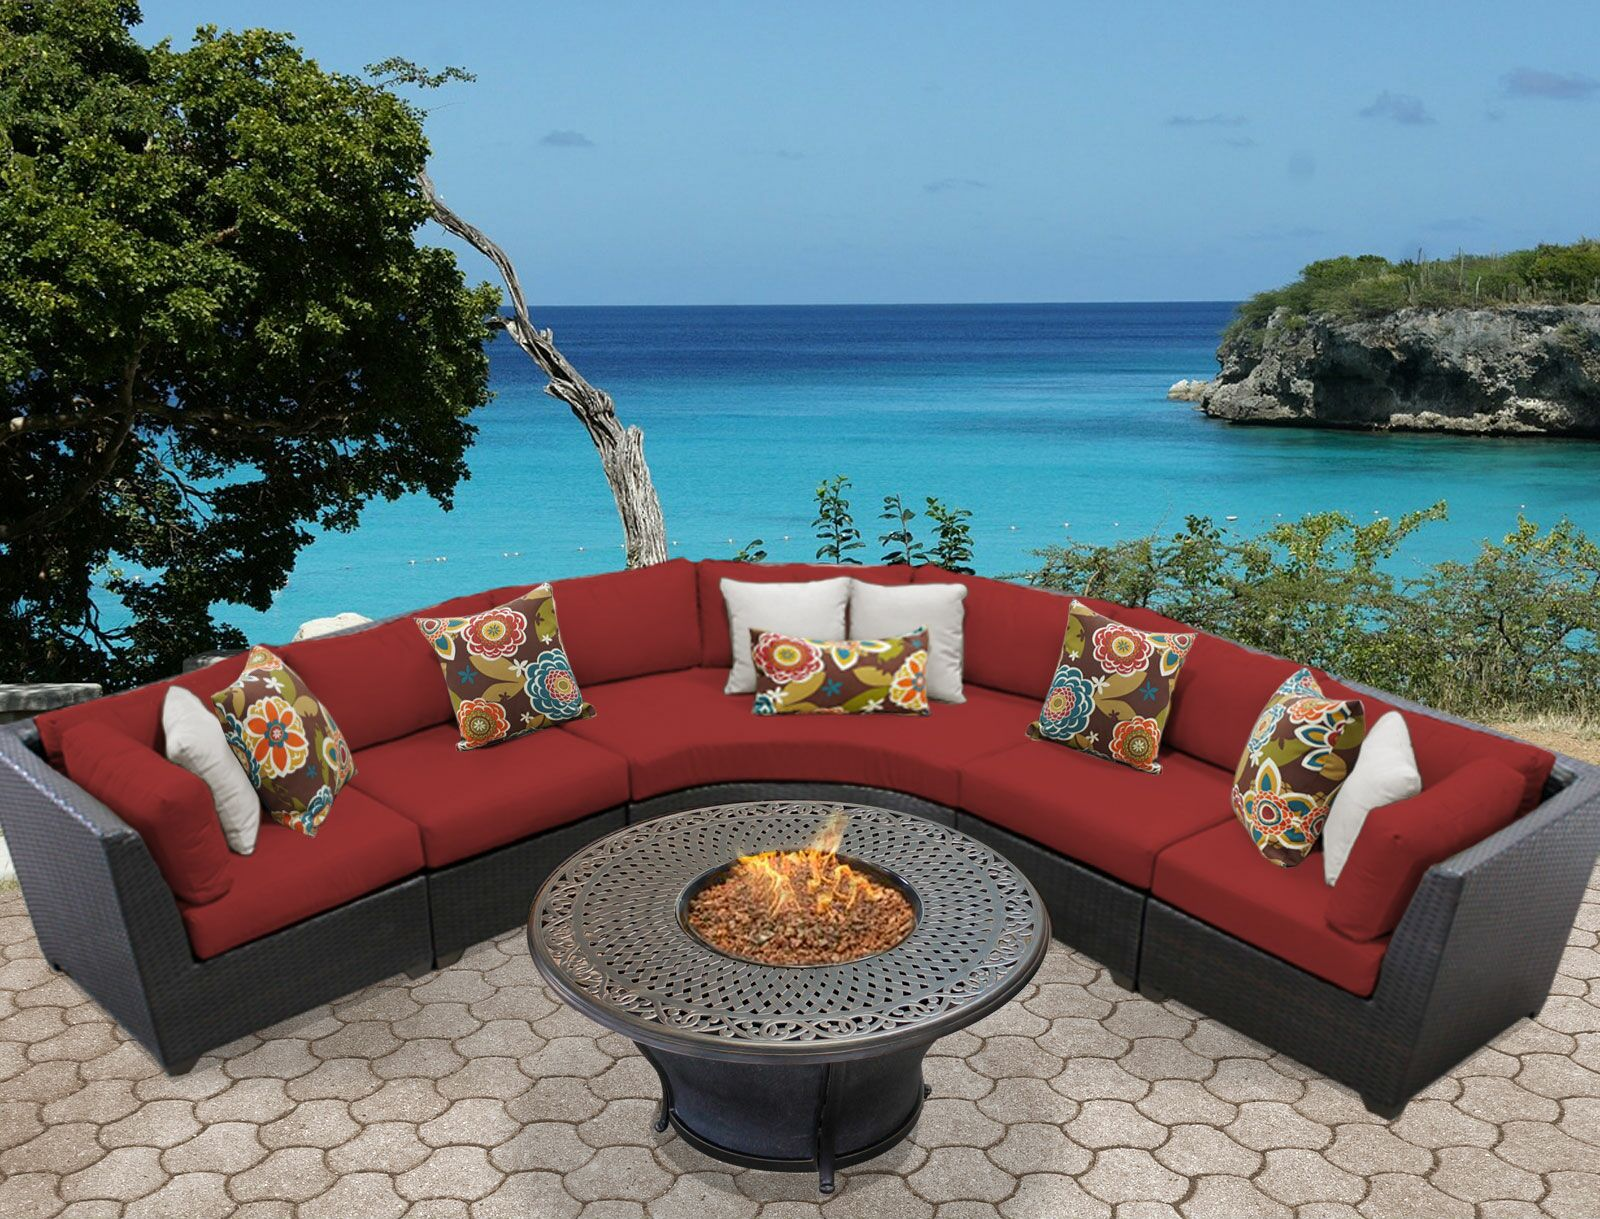 Barbados 6 Piece Sectional Set with Cushions Color: Terracotta